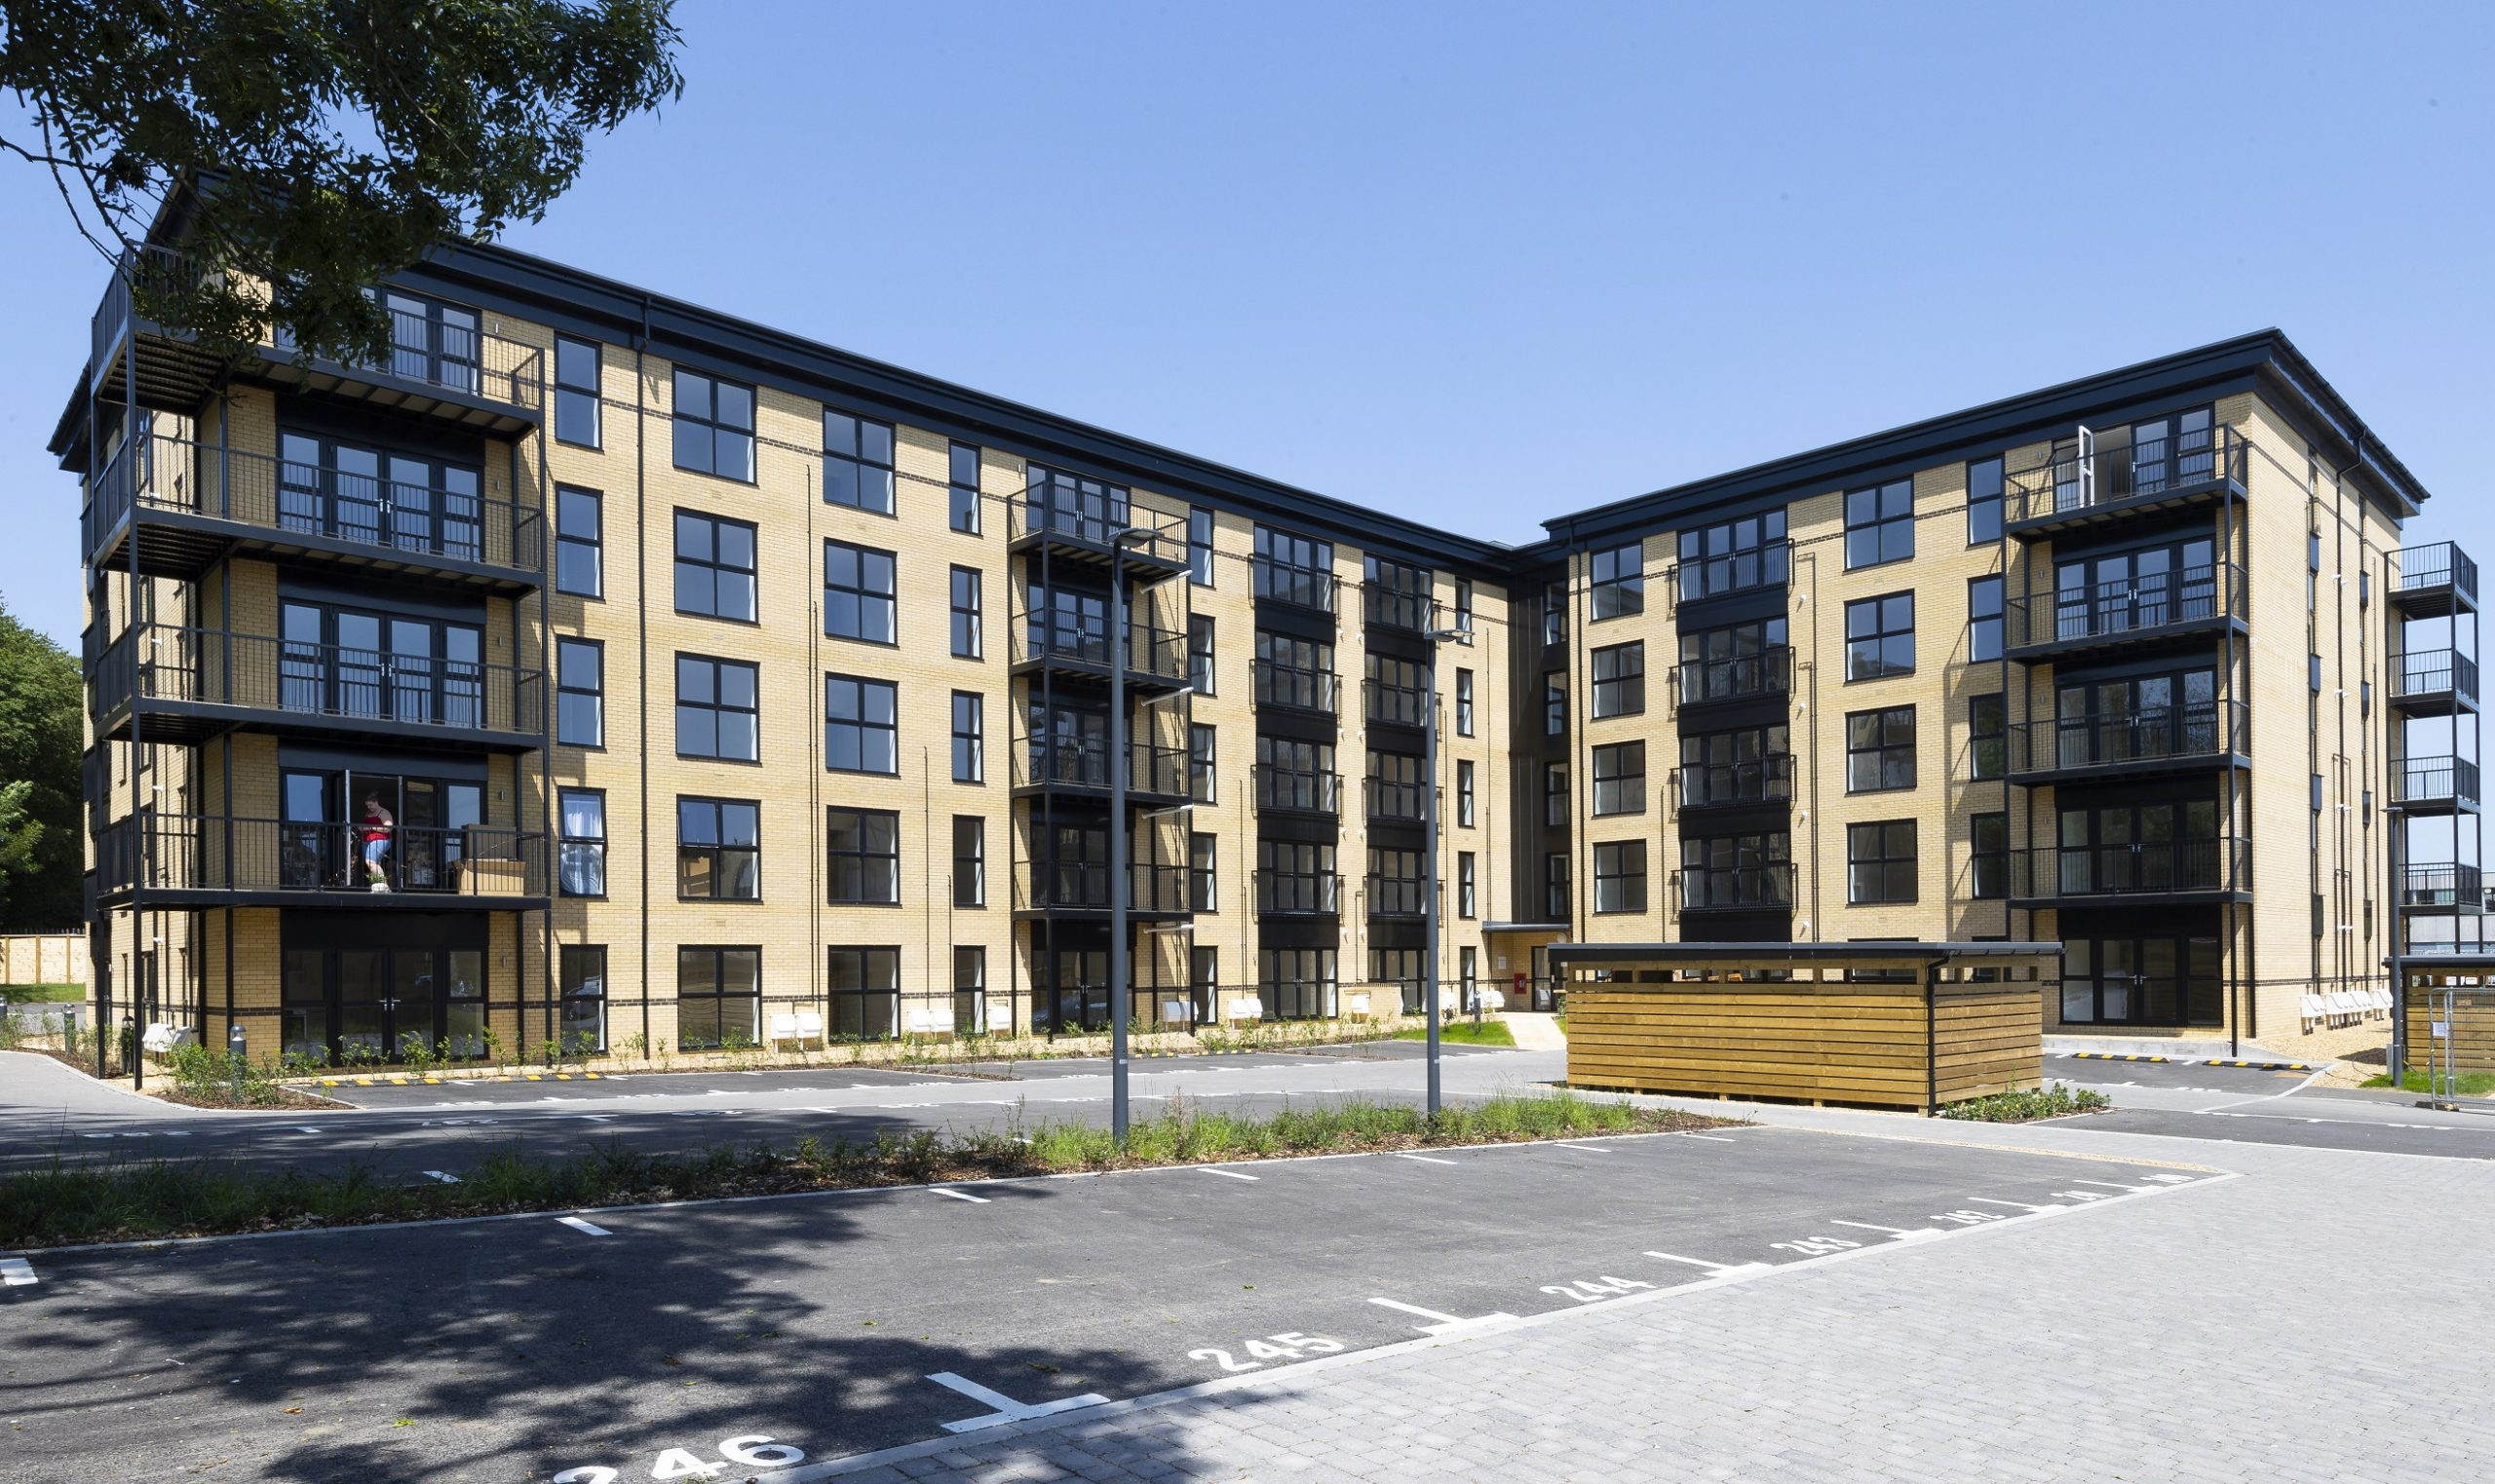 LEADING HOUSING ASSOCIATION REPORTS RECORD MONTH FOR SHARED OWNERSHIP SALES